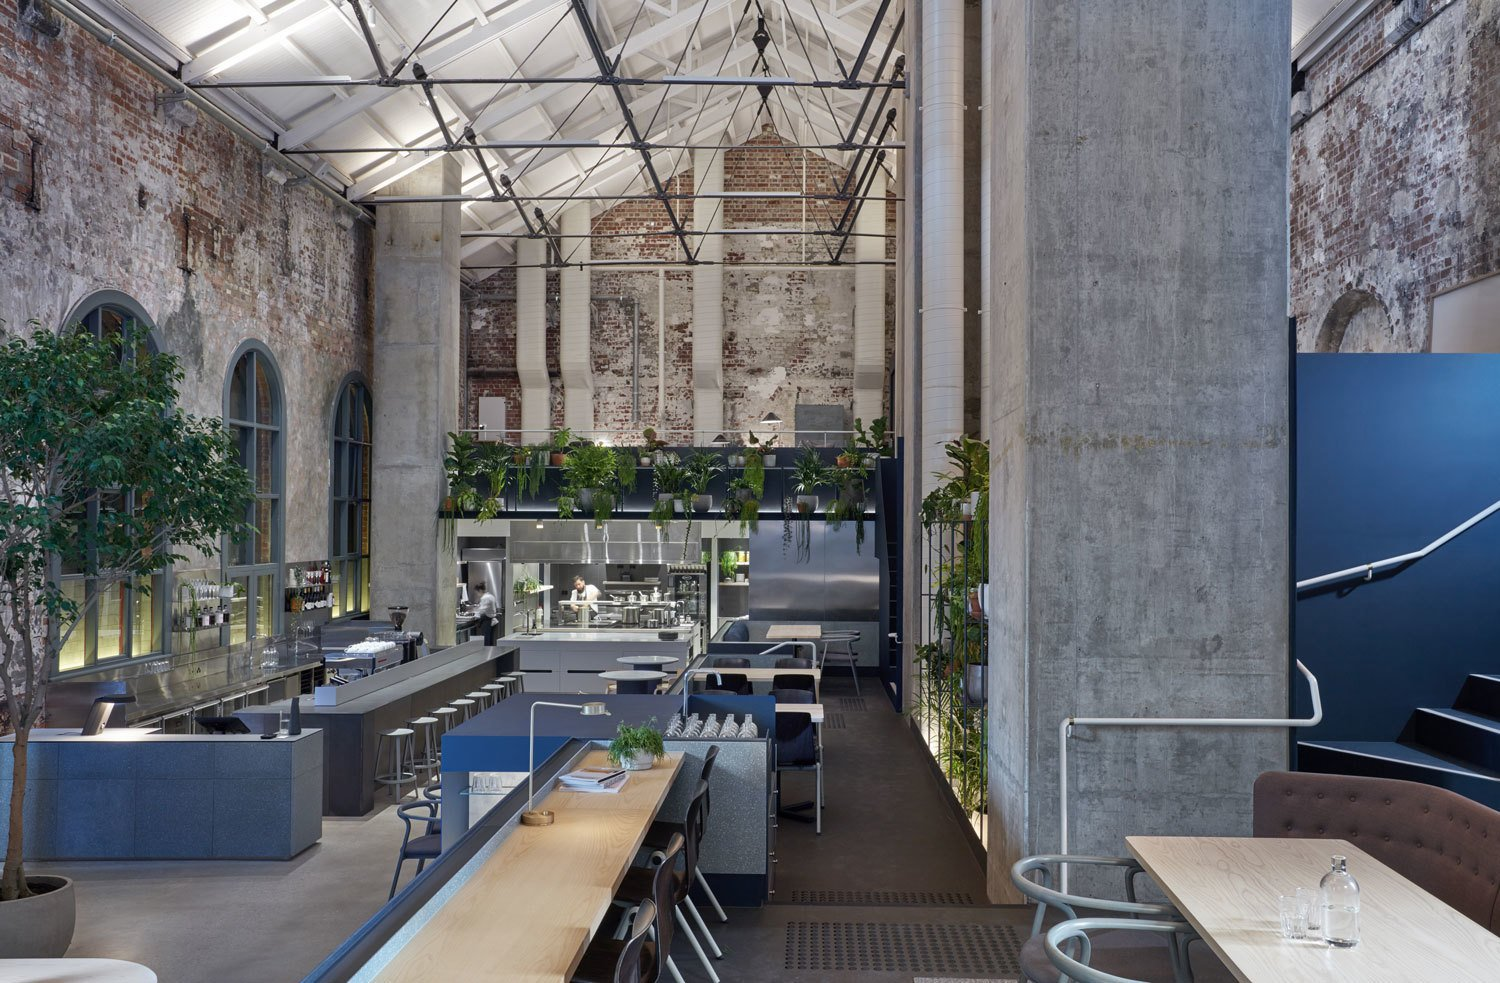 Photo 1 of 10 in An Old Power Station in Melbourne is Transformed Into A Modern Tiered Restaurant